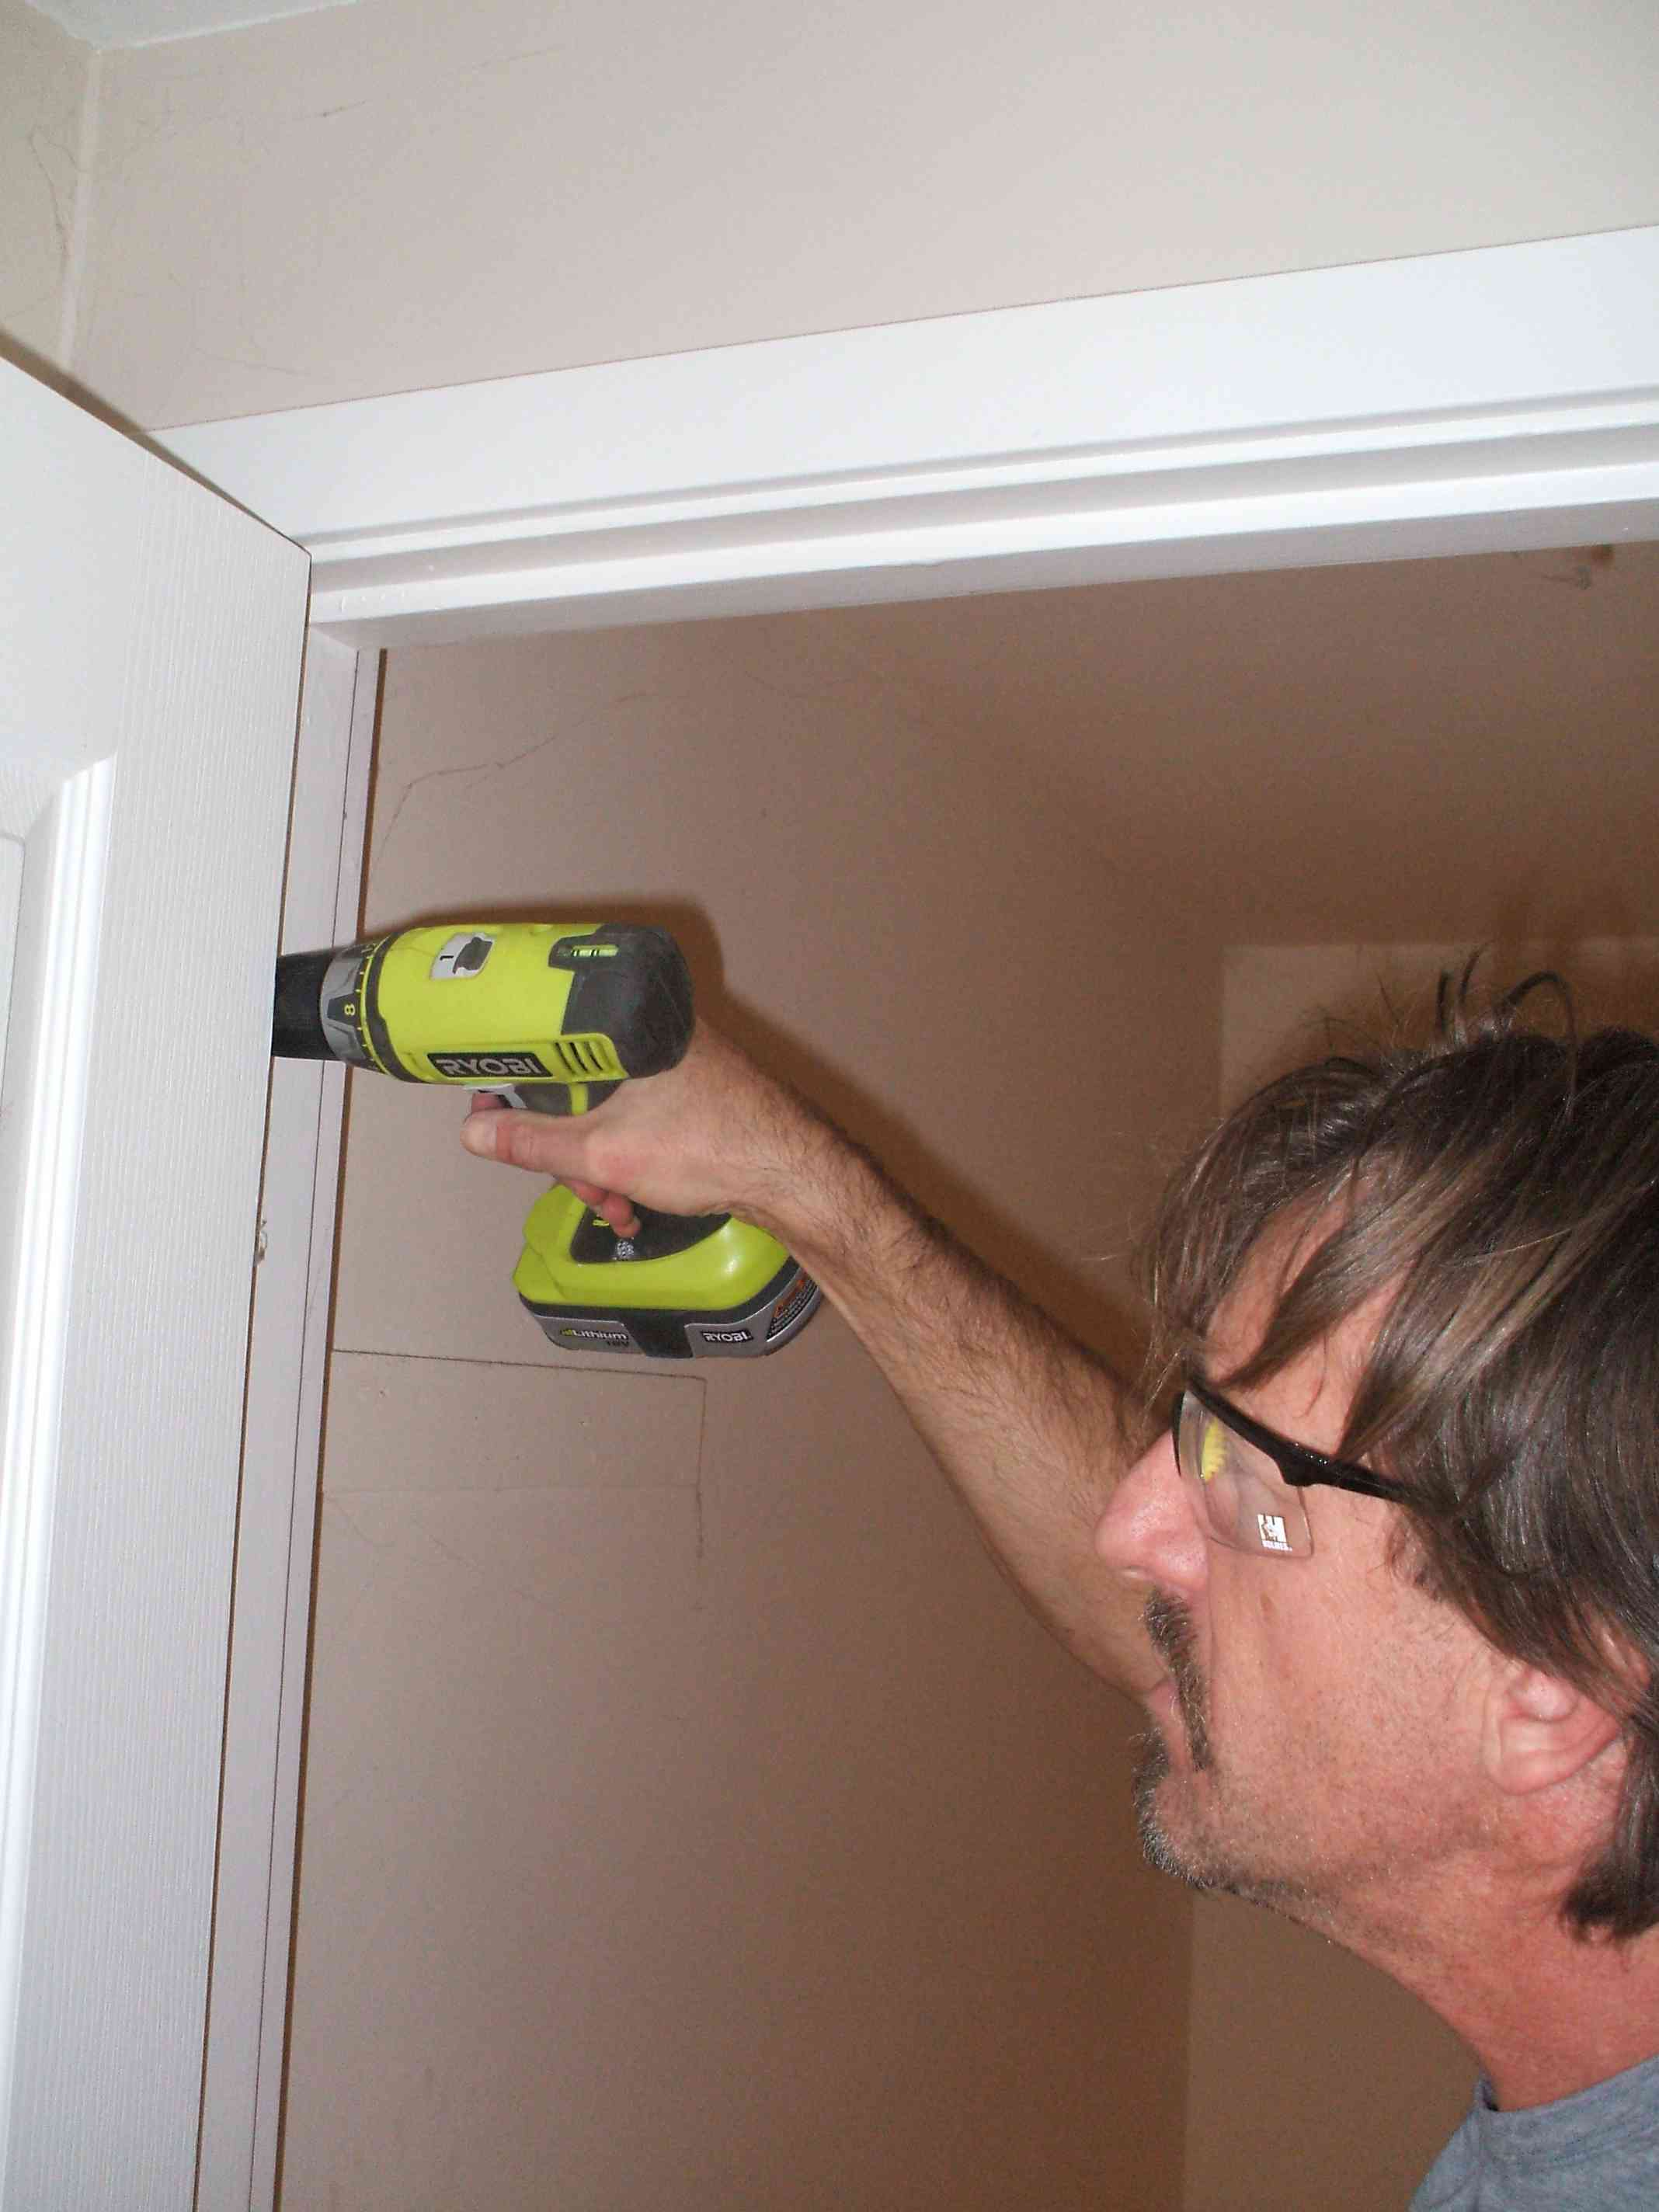 A man removing a door from its frame